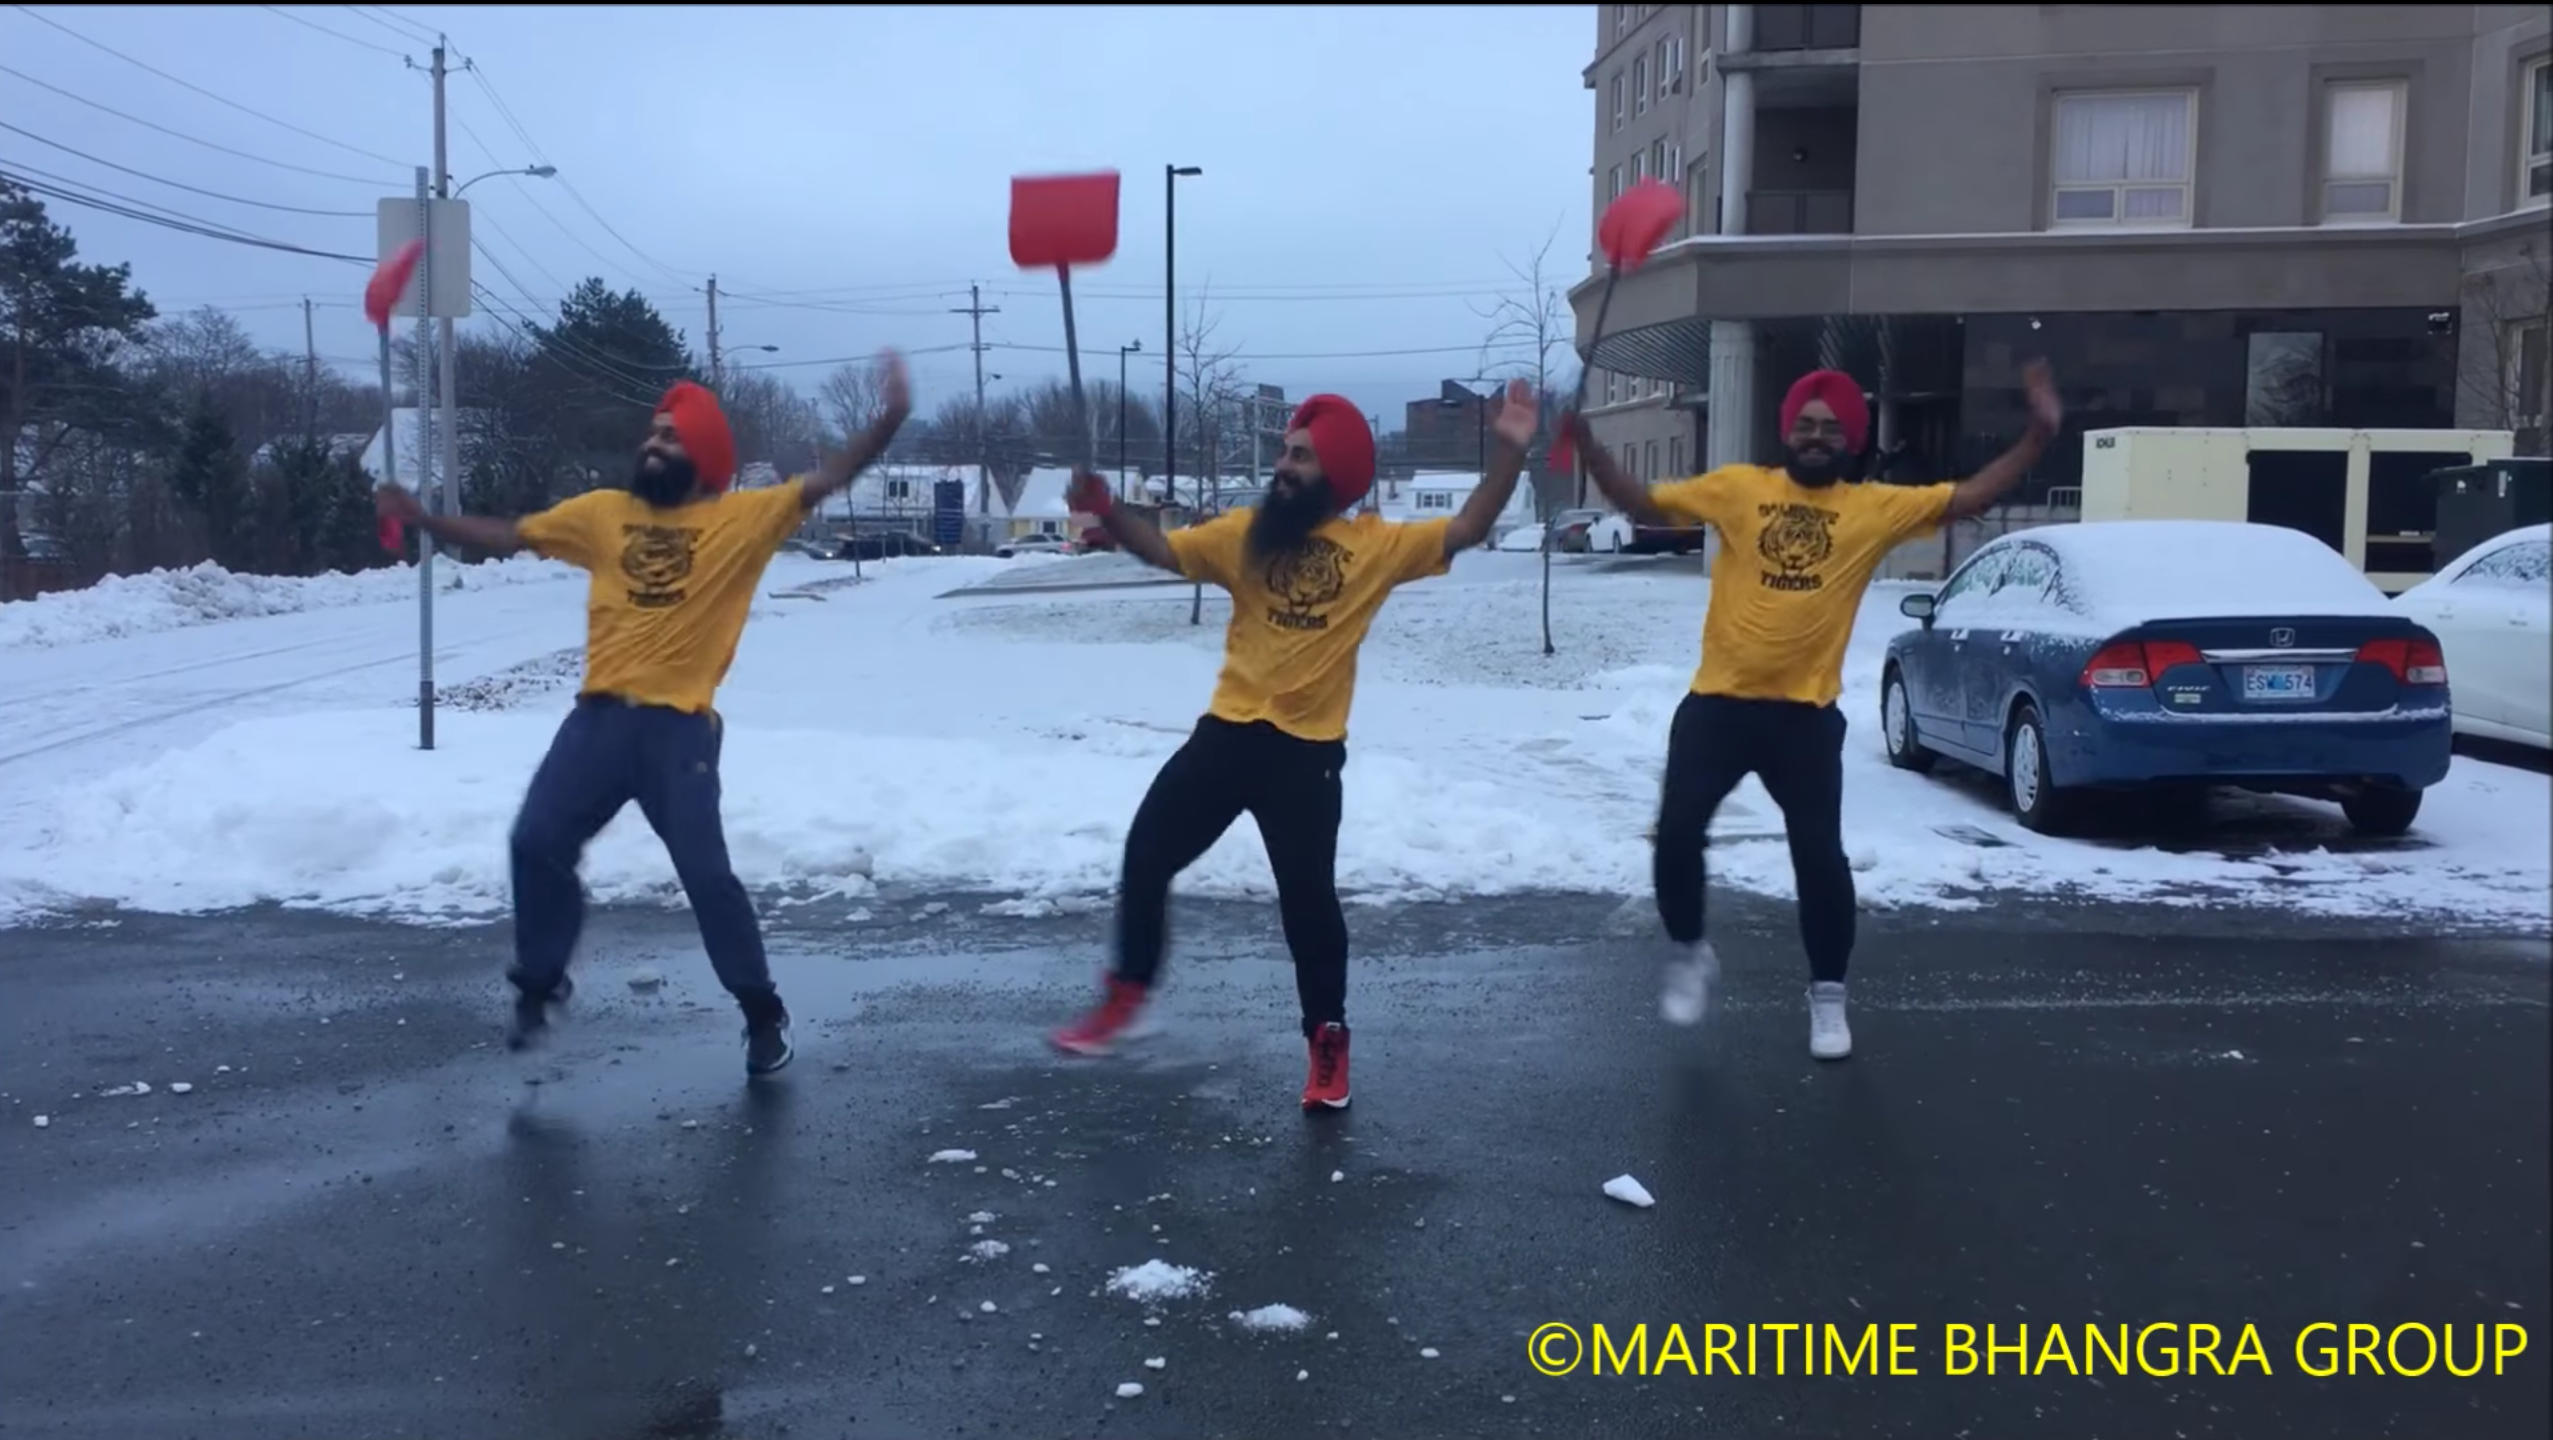 Canadian popular music group Maritime Bhangra Group post a Facebook video to show their Bhangra-dancing while shoveling